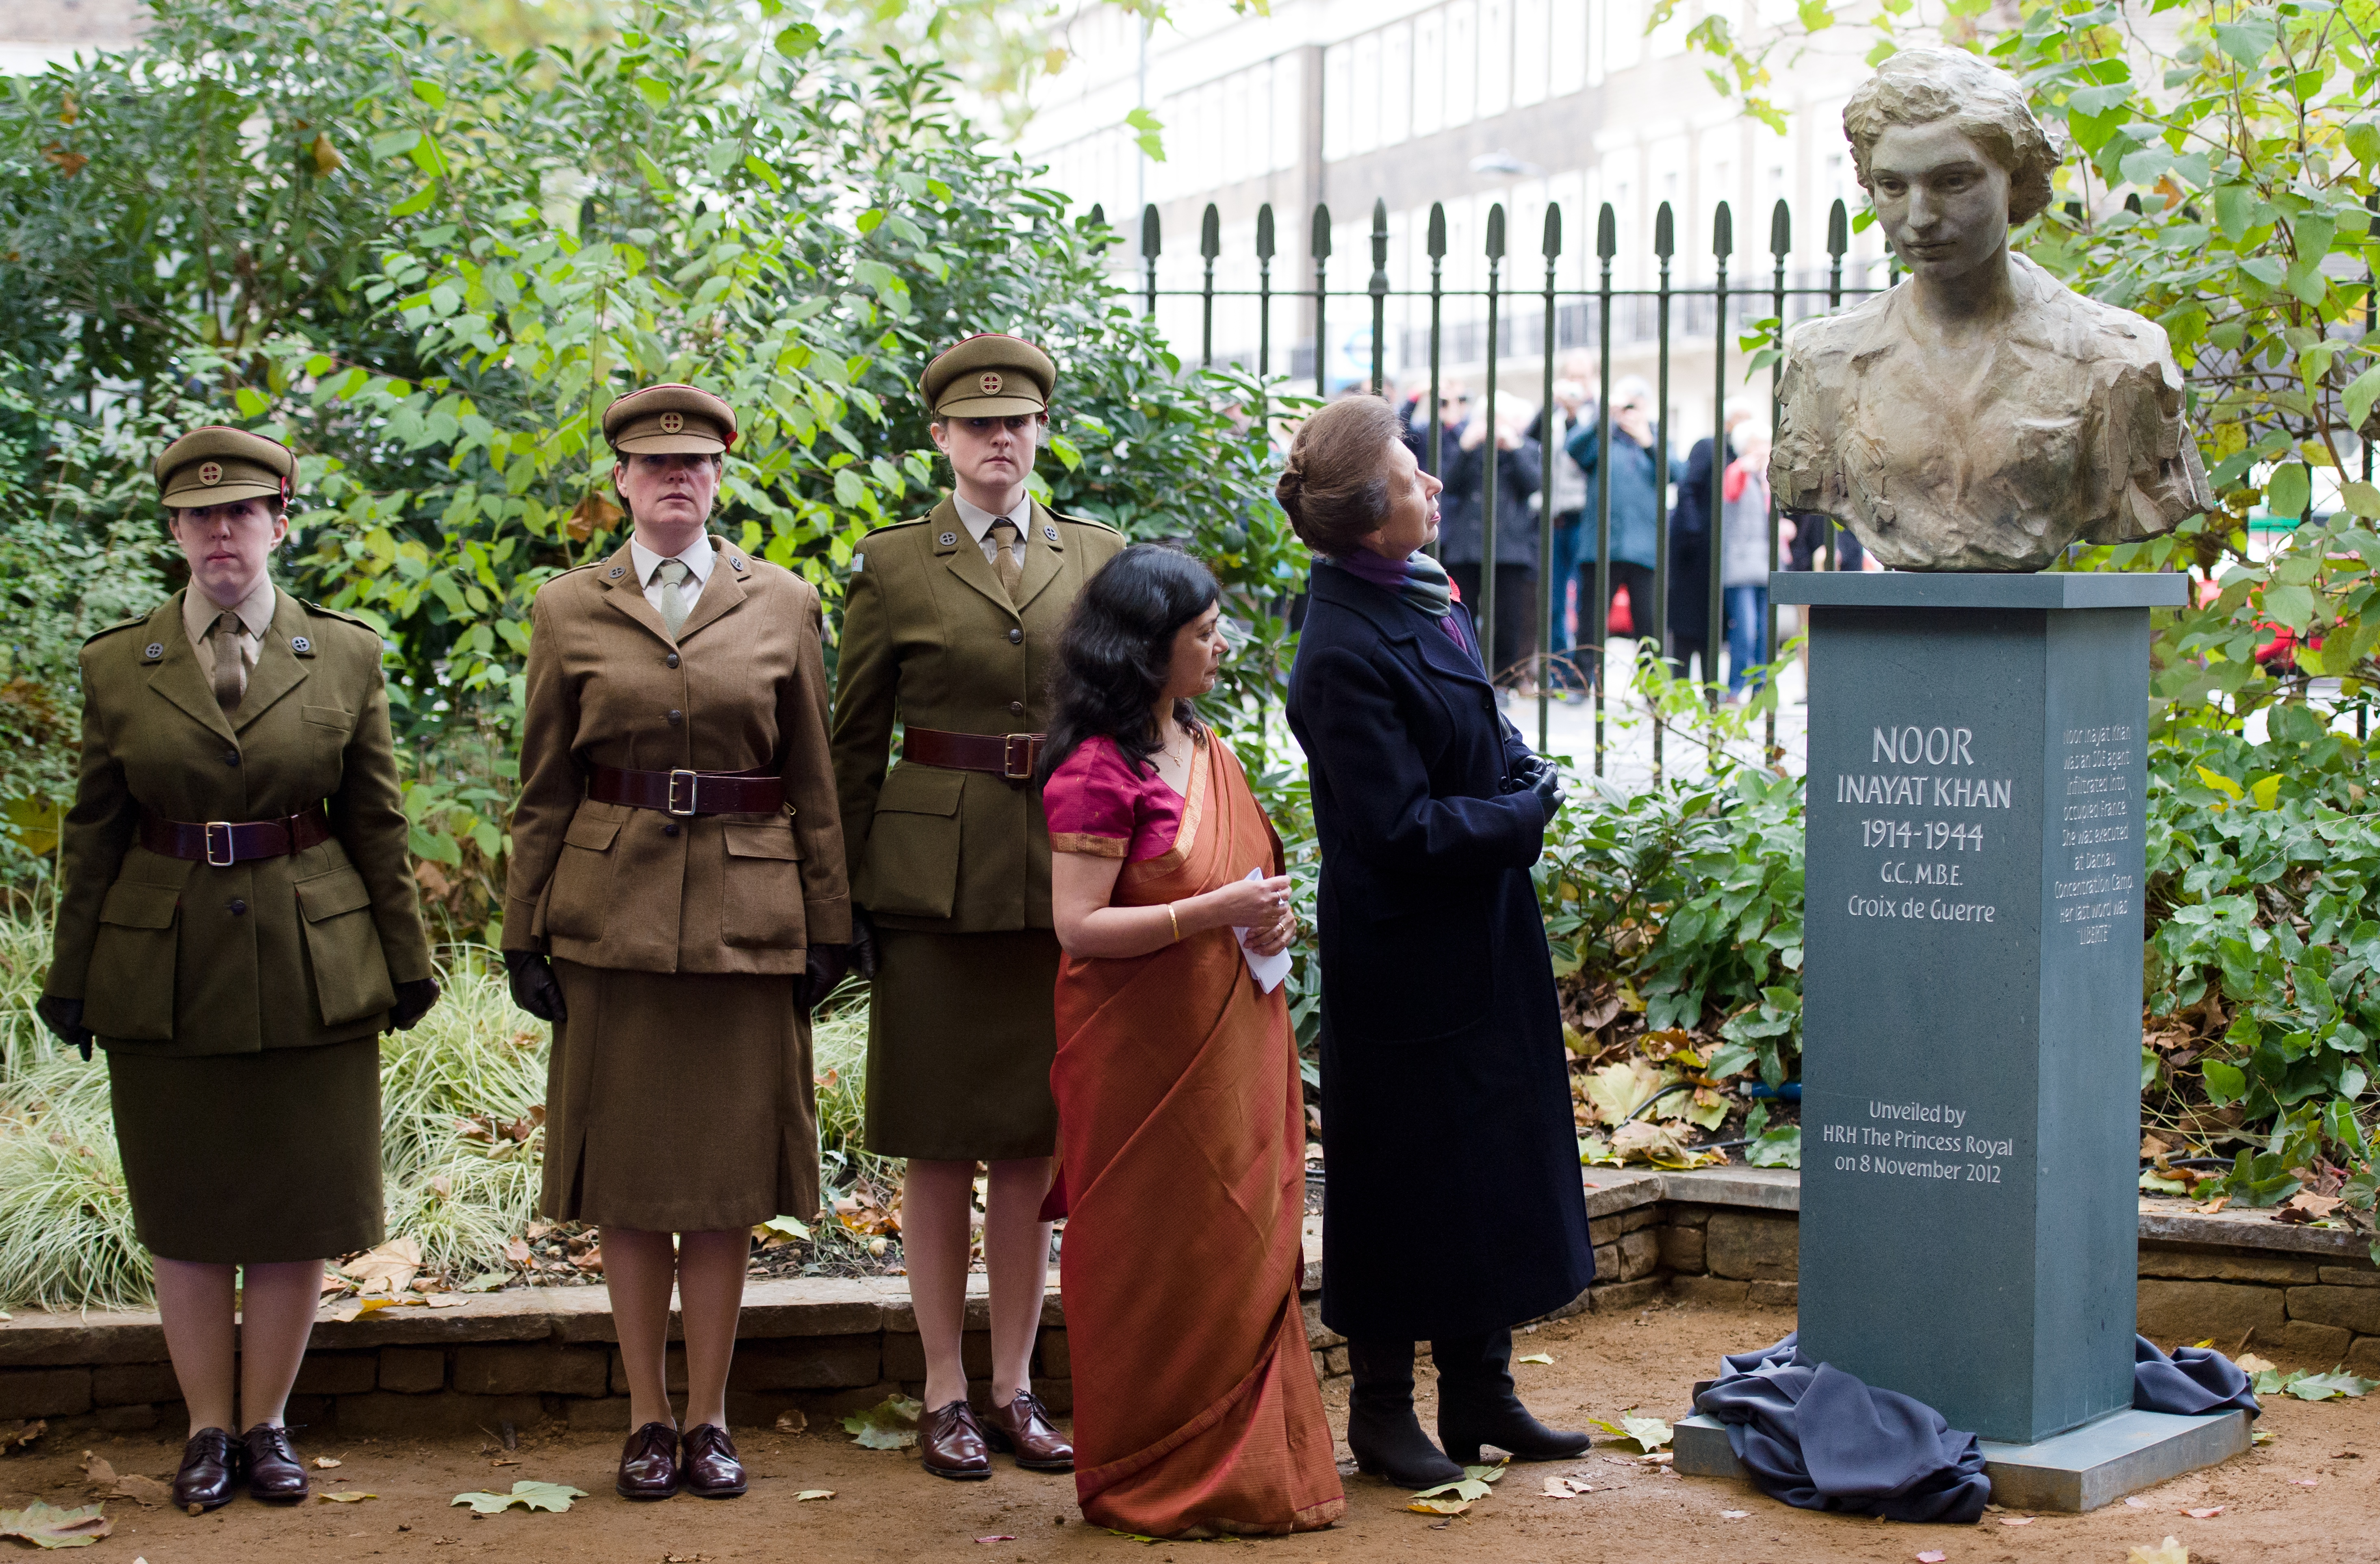 Britain's Princess Anne looks at a statue of Noor Inayat Khan after unveiling it in a ceremony in central London on November 8, 2012.